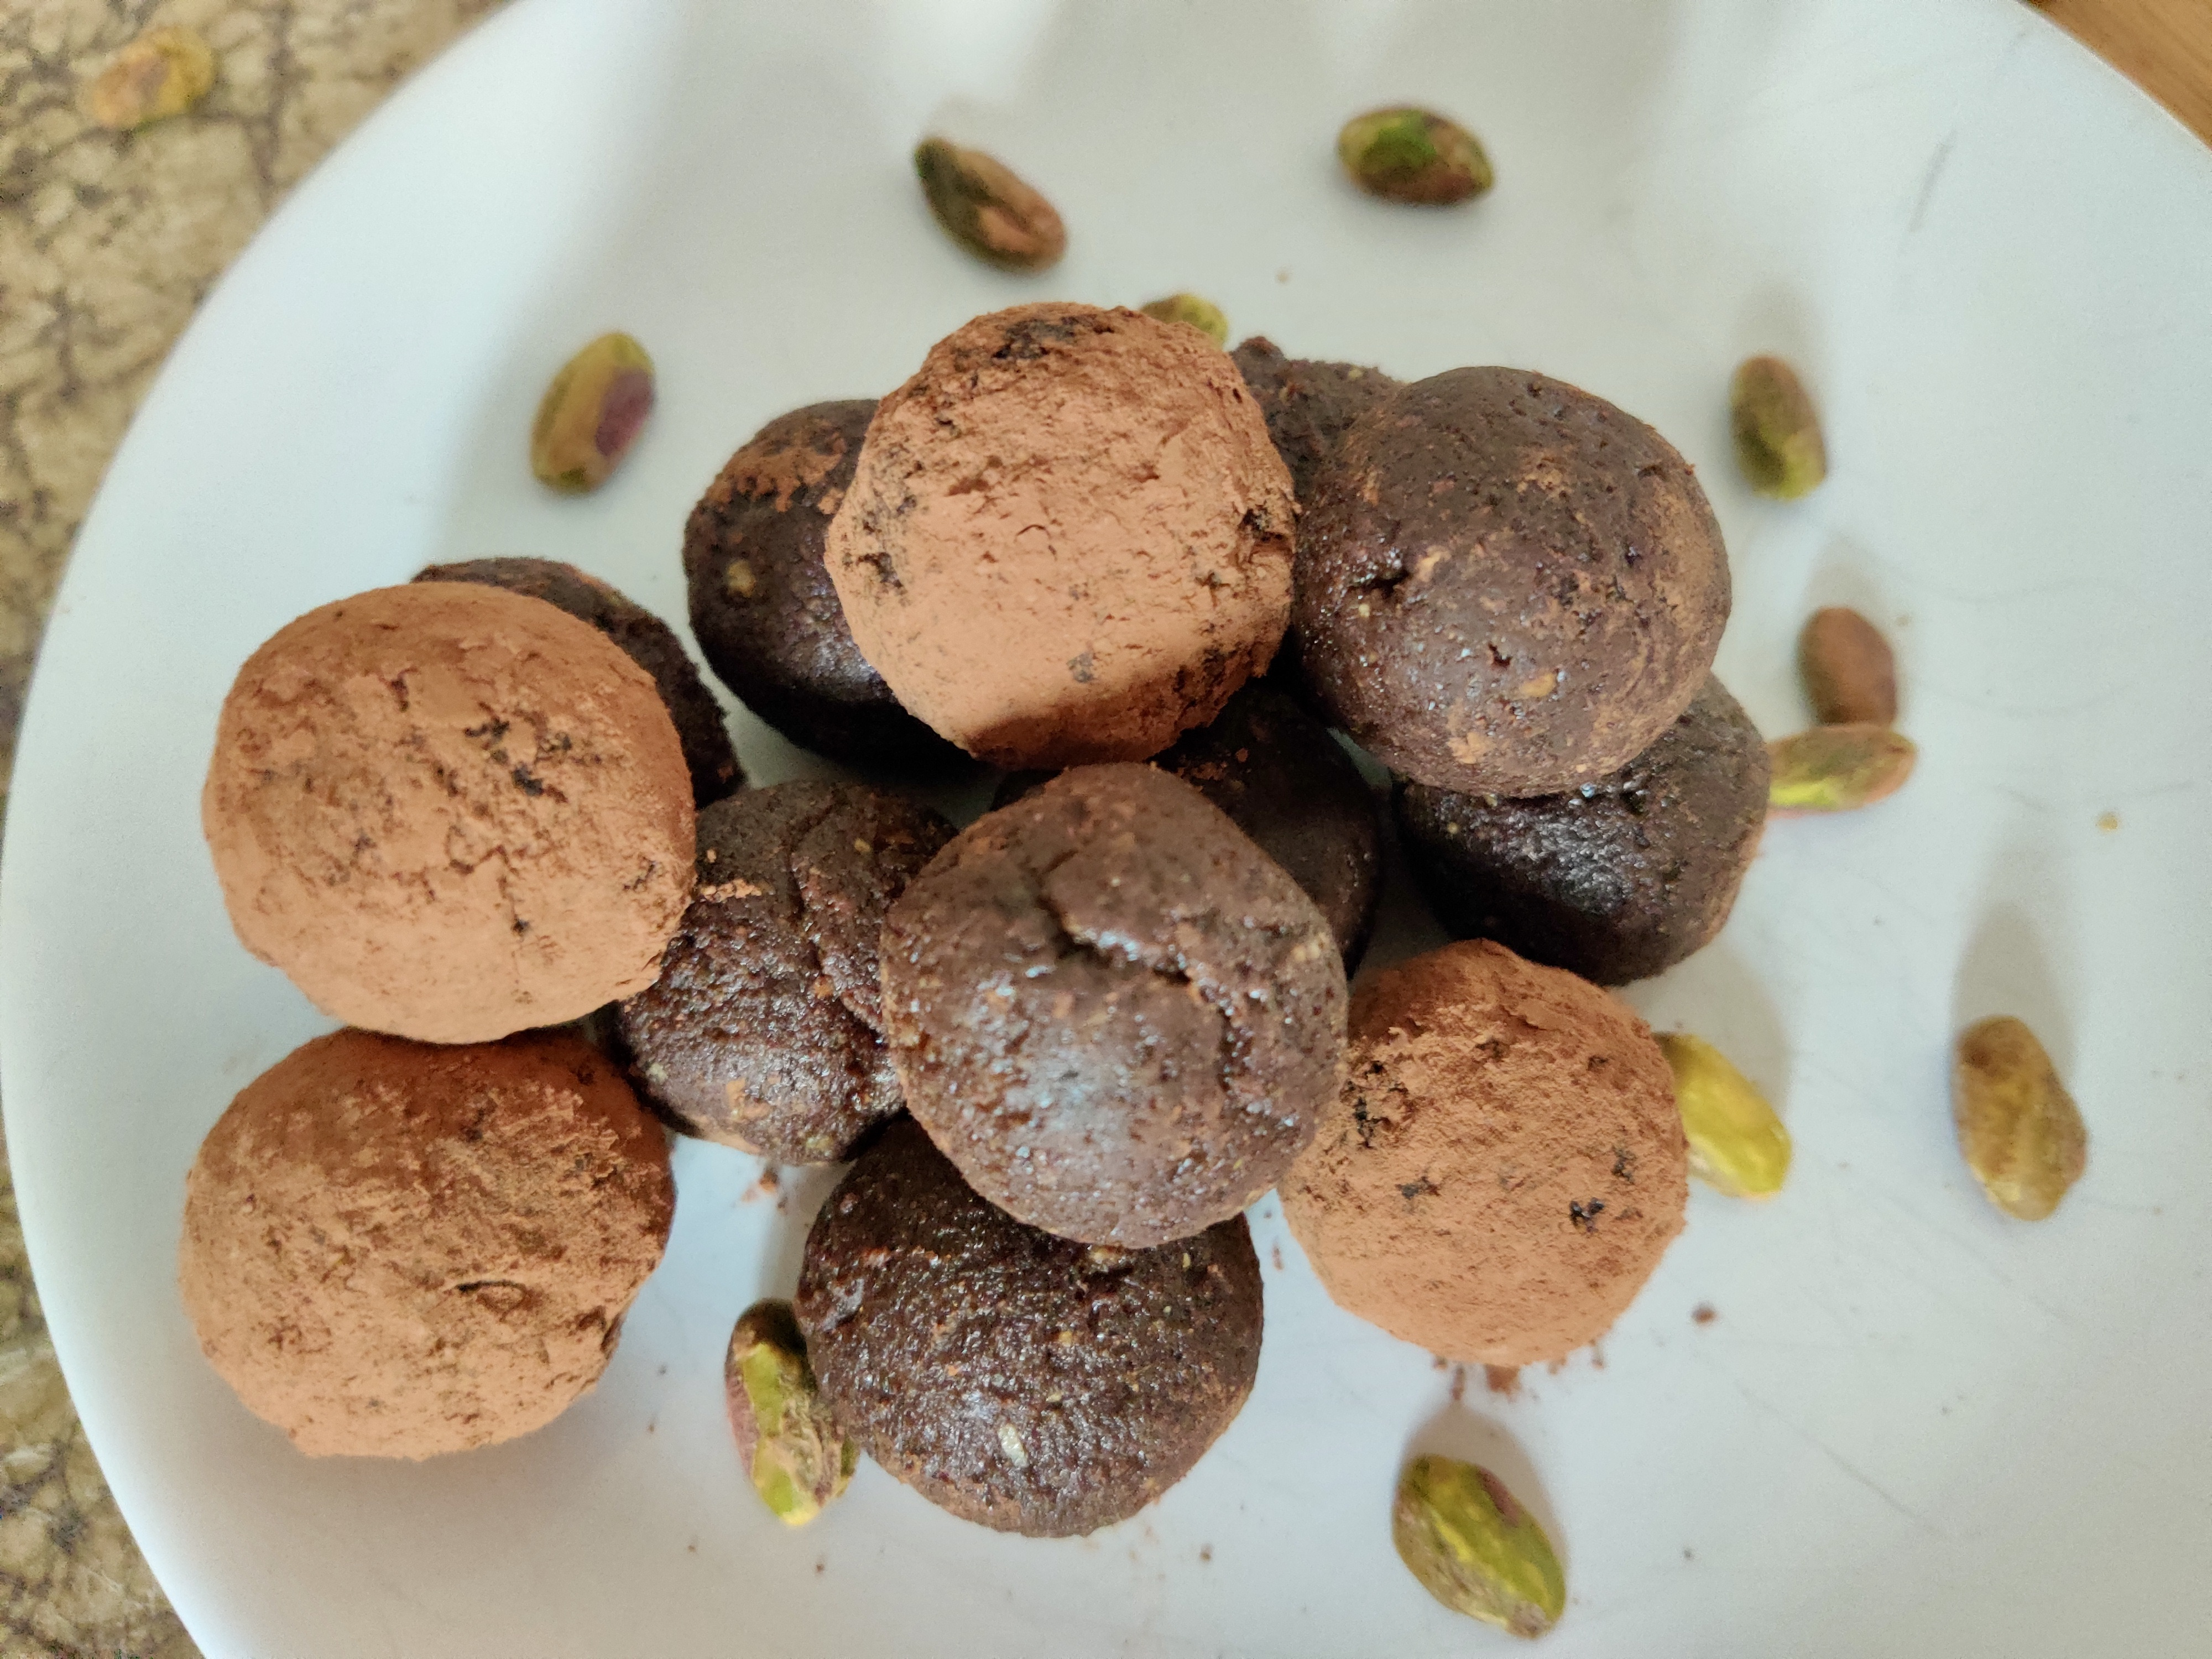 Pistachio and chocolate energy balls will boost your gut health as well as your energy.